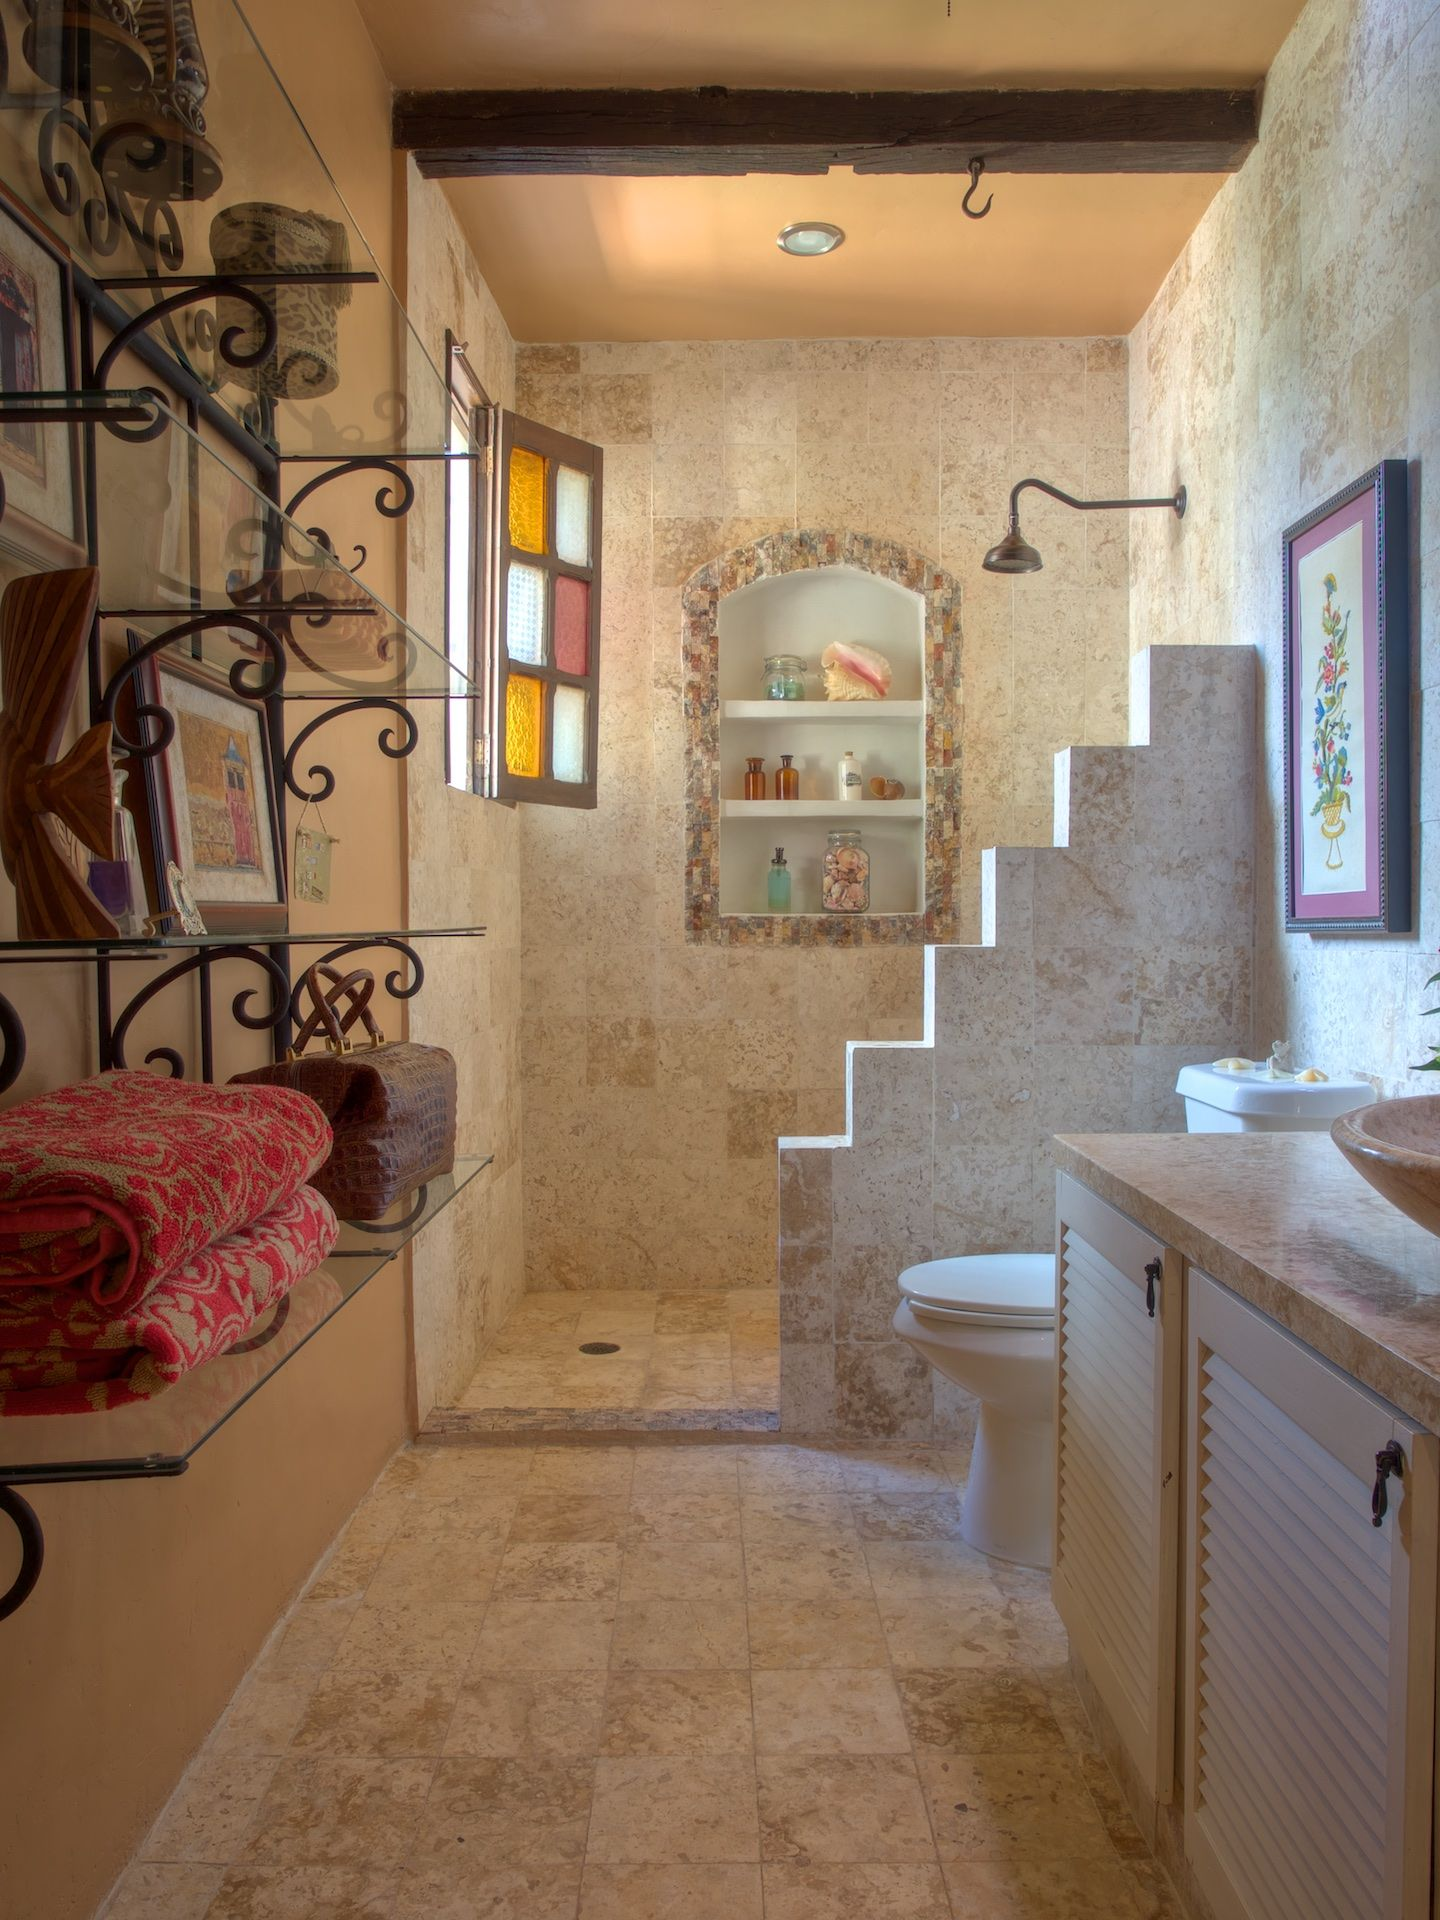 Hacienda Style Living In The City 2016 Home Tour Participant Partially Furnished With High End Spanish Style Bathrooms Spanish Style Homes Bathroom Interior